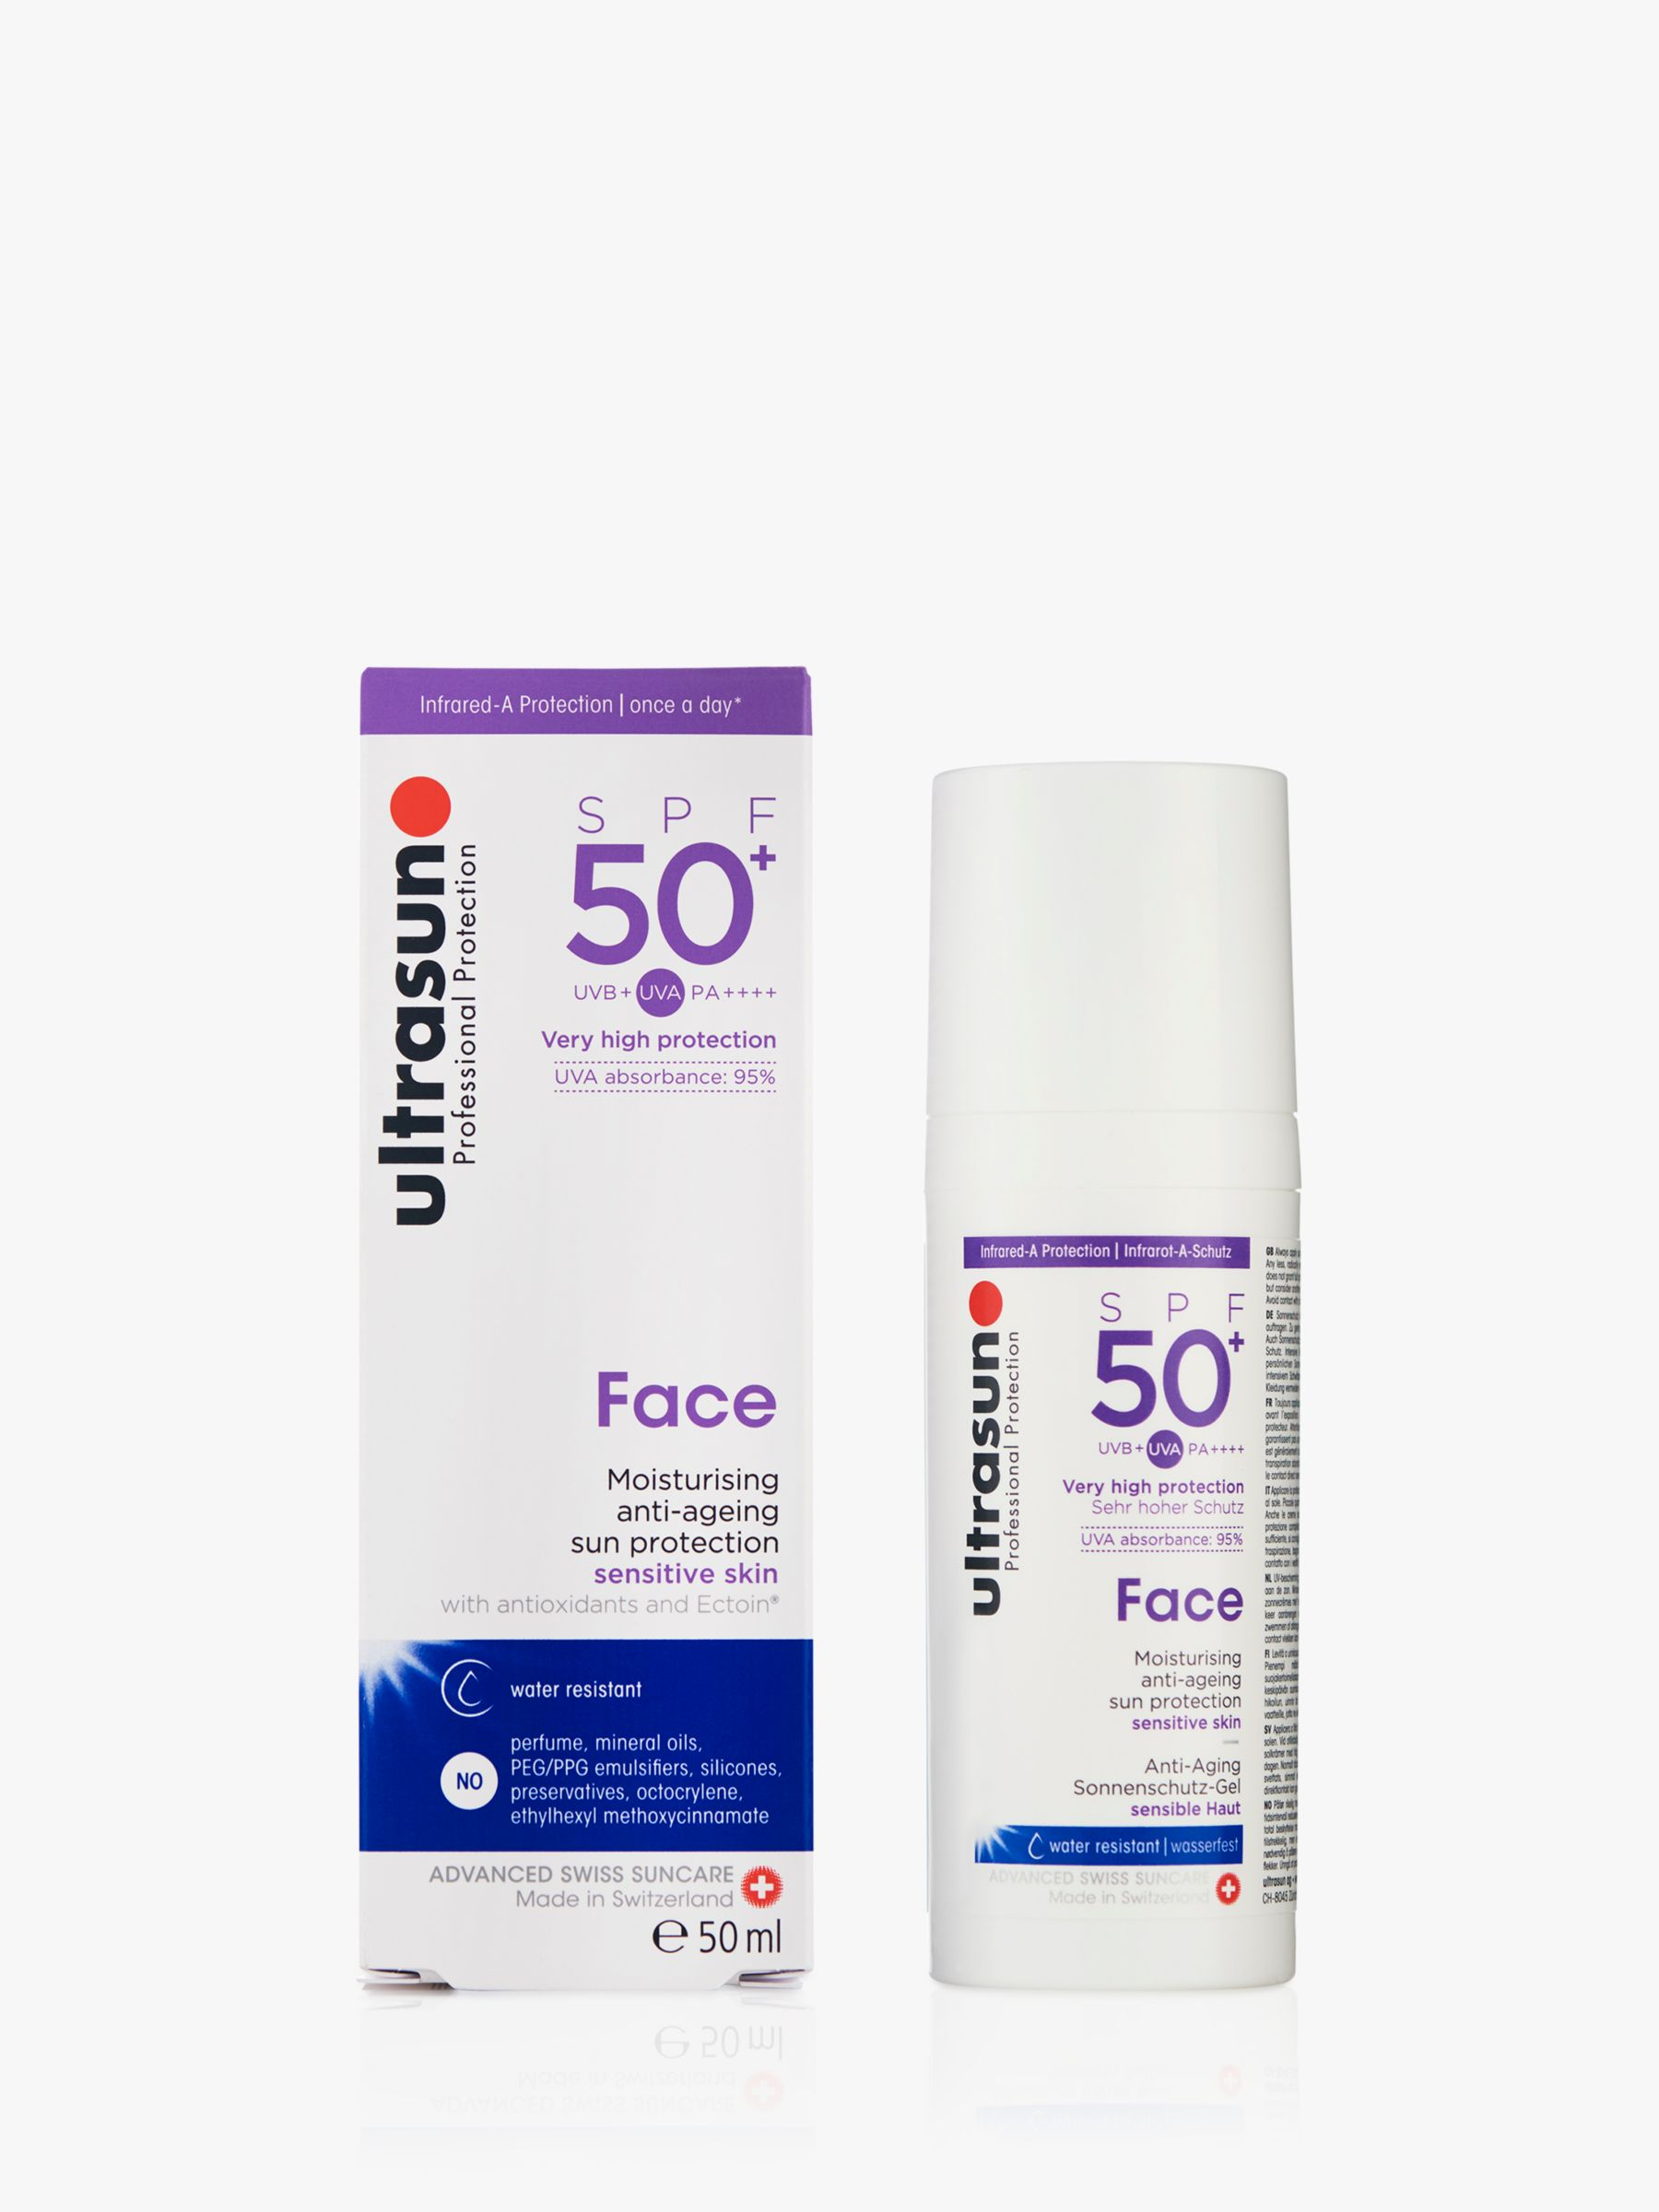 Ultrasun Ultrasun SPF 50+ Anti-Ageing Ultra Sensitive Facial Sun Cream, 50ml